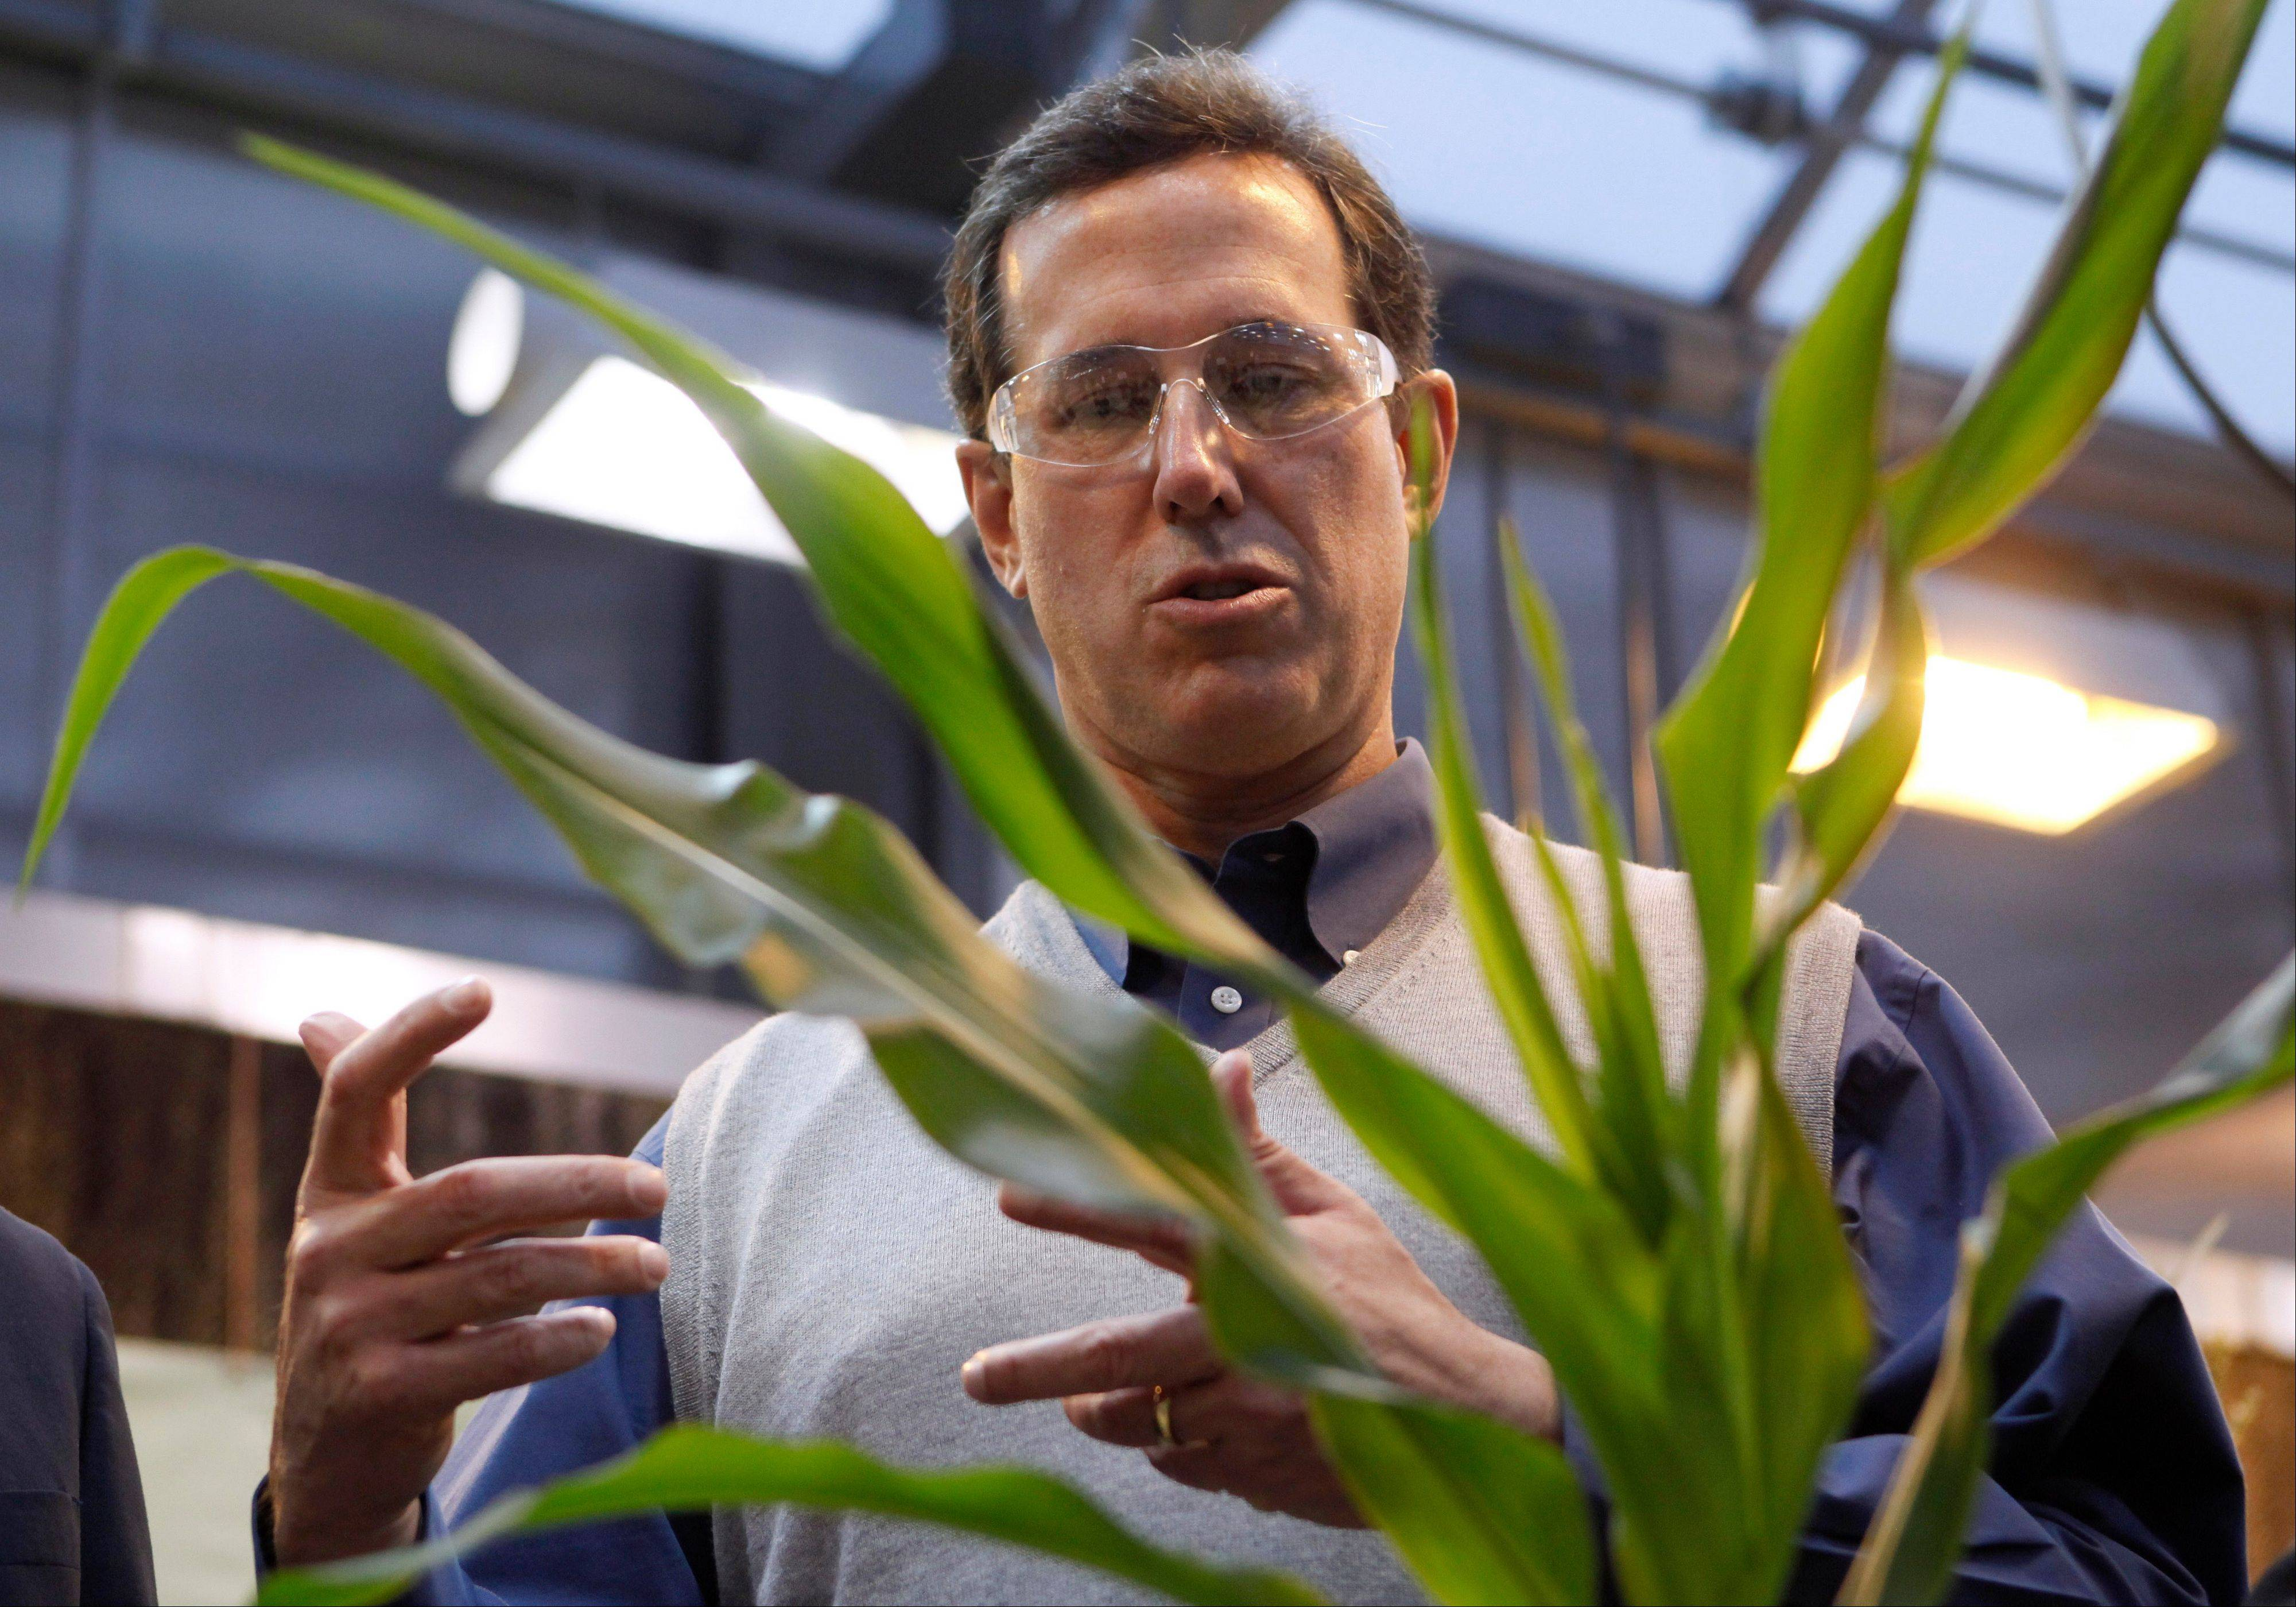 Republican presidential candidate and former Pennsylvania Sen. Rick Santorum looks at corn plants during a tour of Pioneer Hi-Bred Carver Center in Johnston, Iowa, in this Dec. 14, 2011, file photo. Santorum called for ending federal support for the ethanol industry before he won the Iowa caucuses the following month.